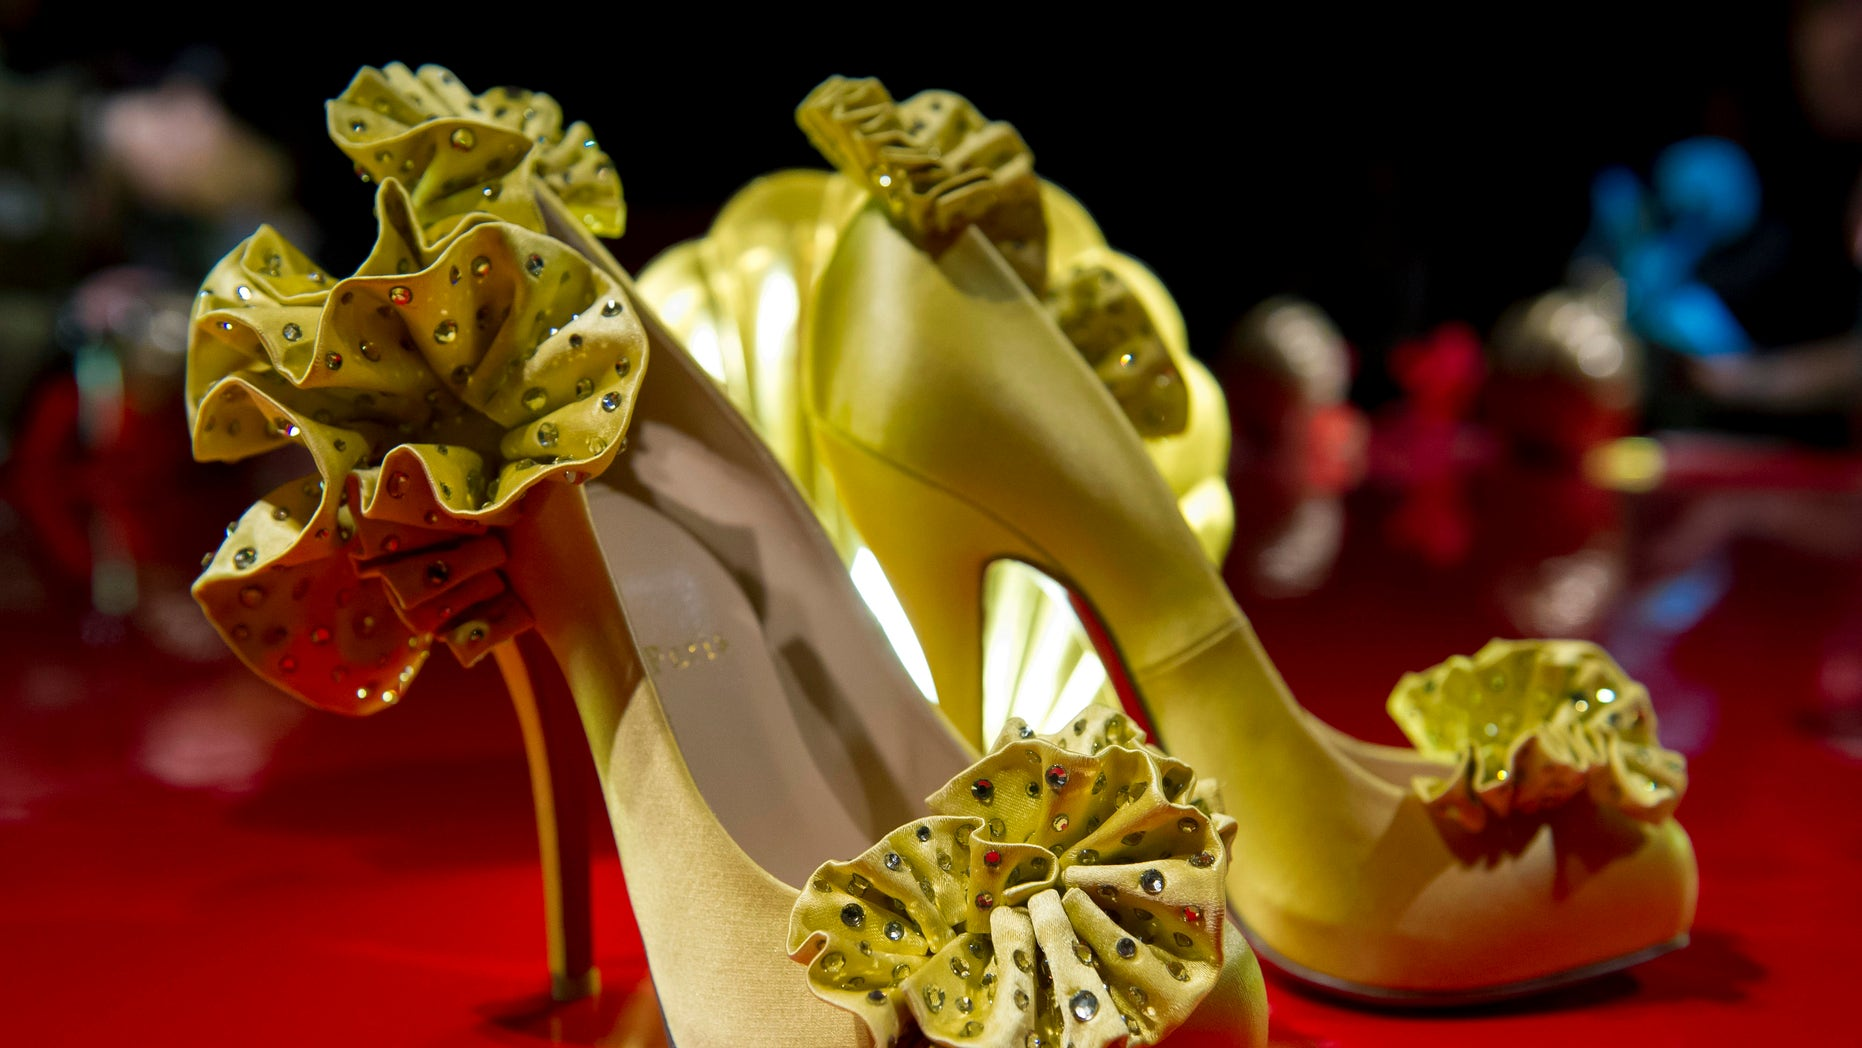 April 30: French shoe designer, Christian Louboutin, opens his first ever retrospective exhibition, at the Design Museum, London. He is suing French fashion house Yves Saint Laurent and its parent company PPR,  for trademark infringement in a U.S. federal appeals court.